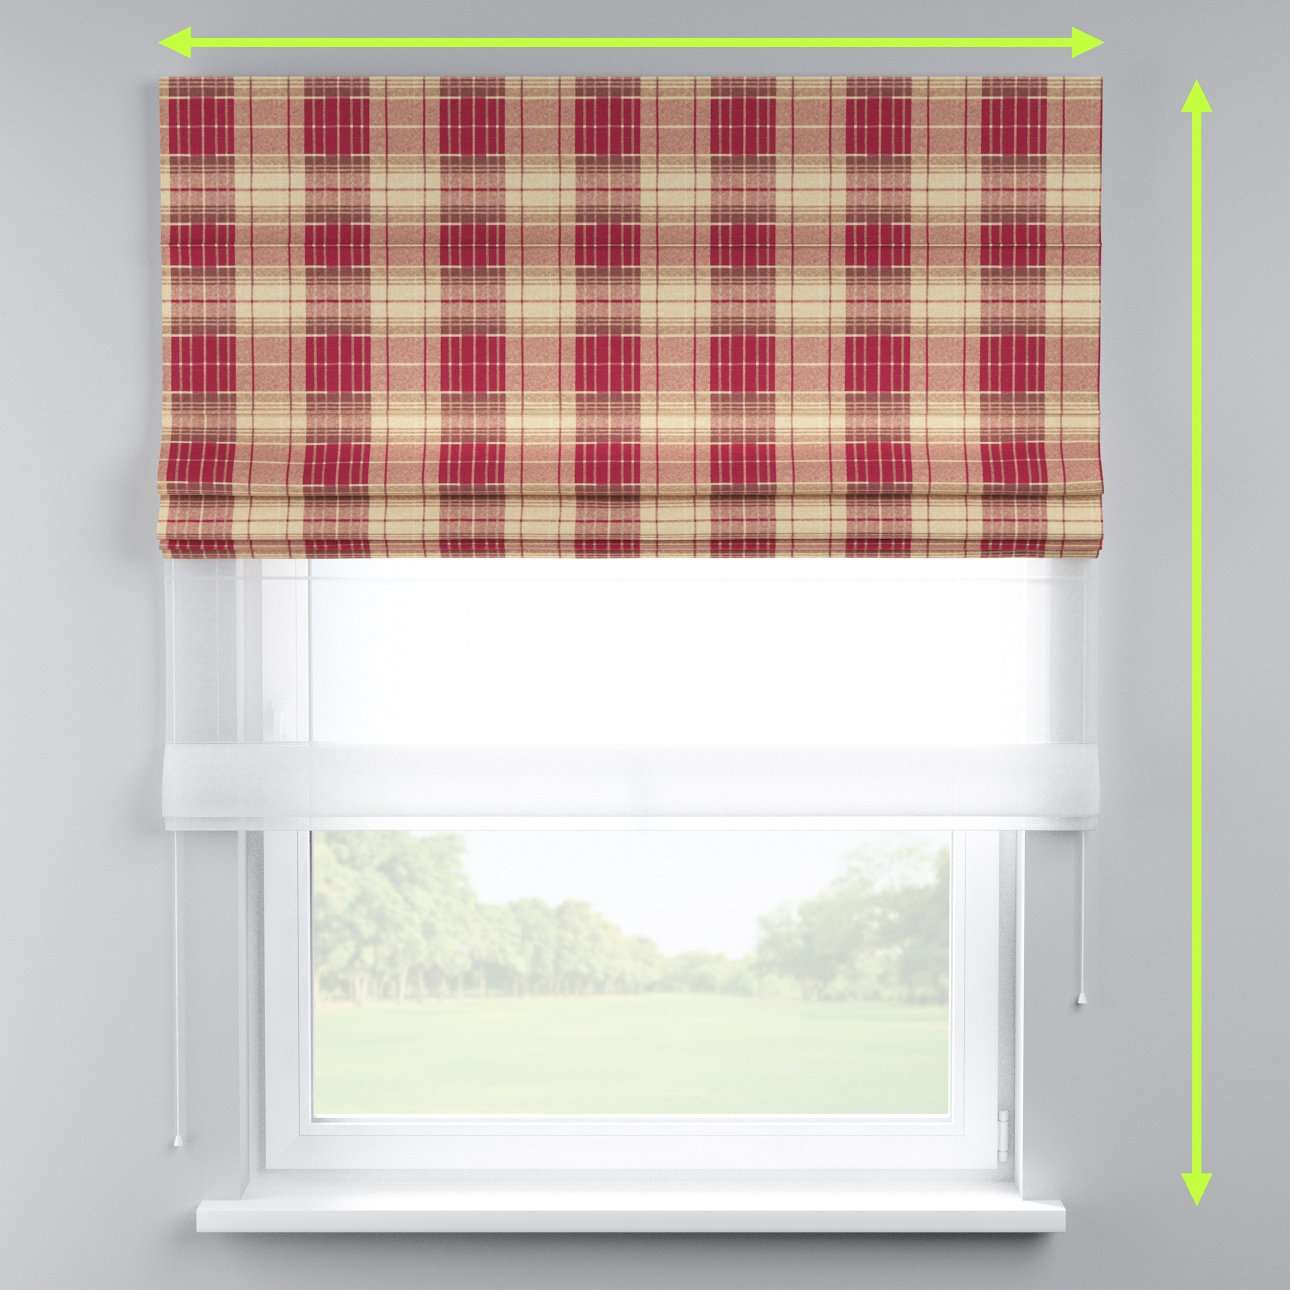 Voile and fabric roman blind (DUO II) in collection Mirella, fabric: 142-06